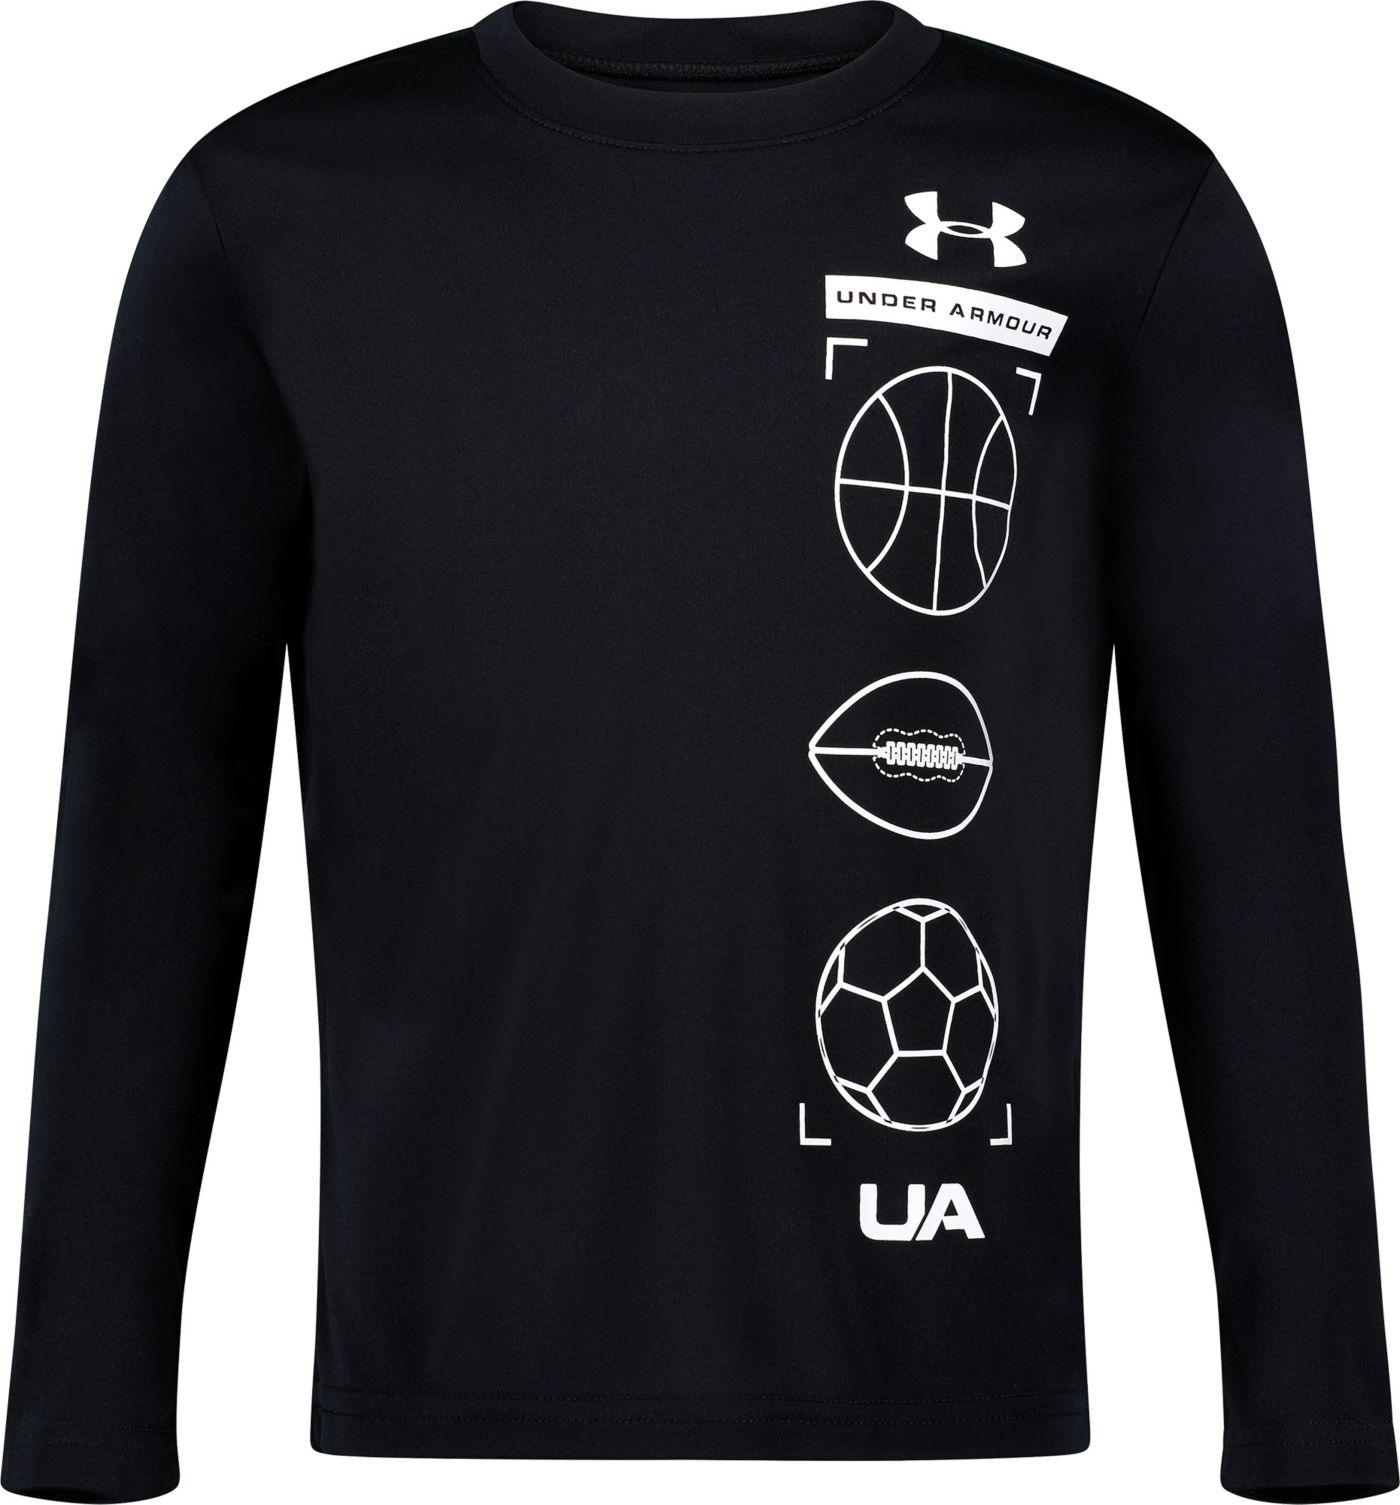 Under Armour Little Boys' Stacked Graphic Long Sleeve Shirt